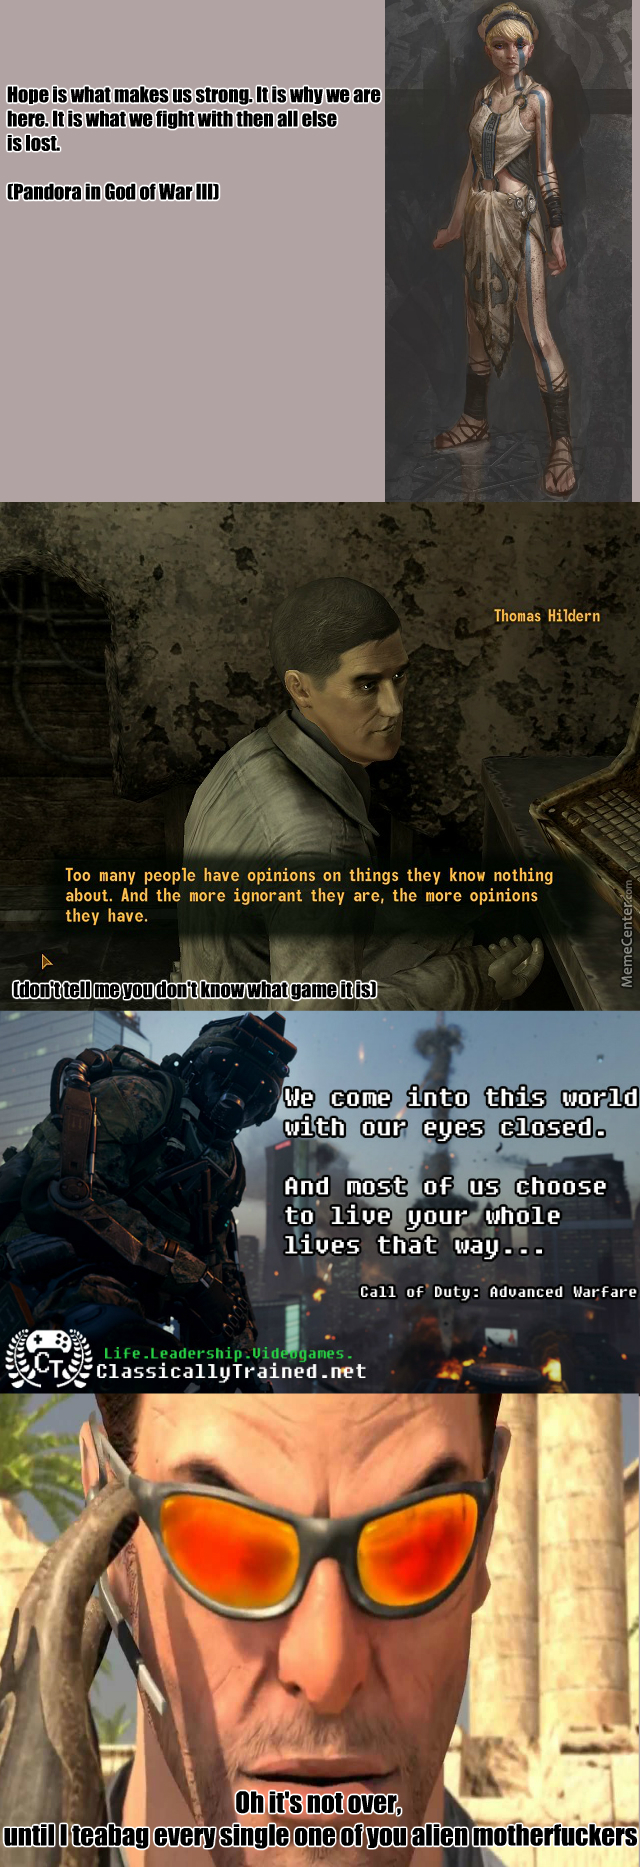 Deepest Video Game Quotes Evarrr 420 Noscope Brah By Recyclebin